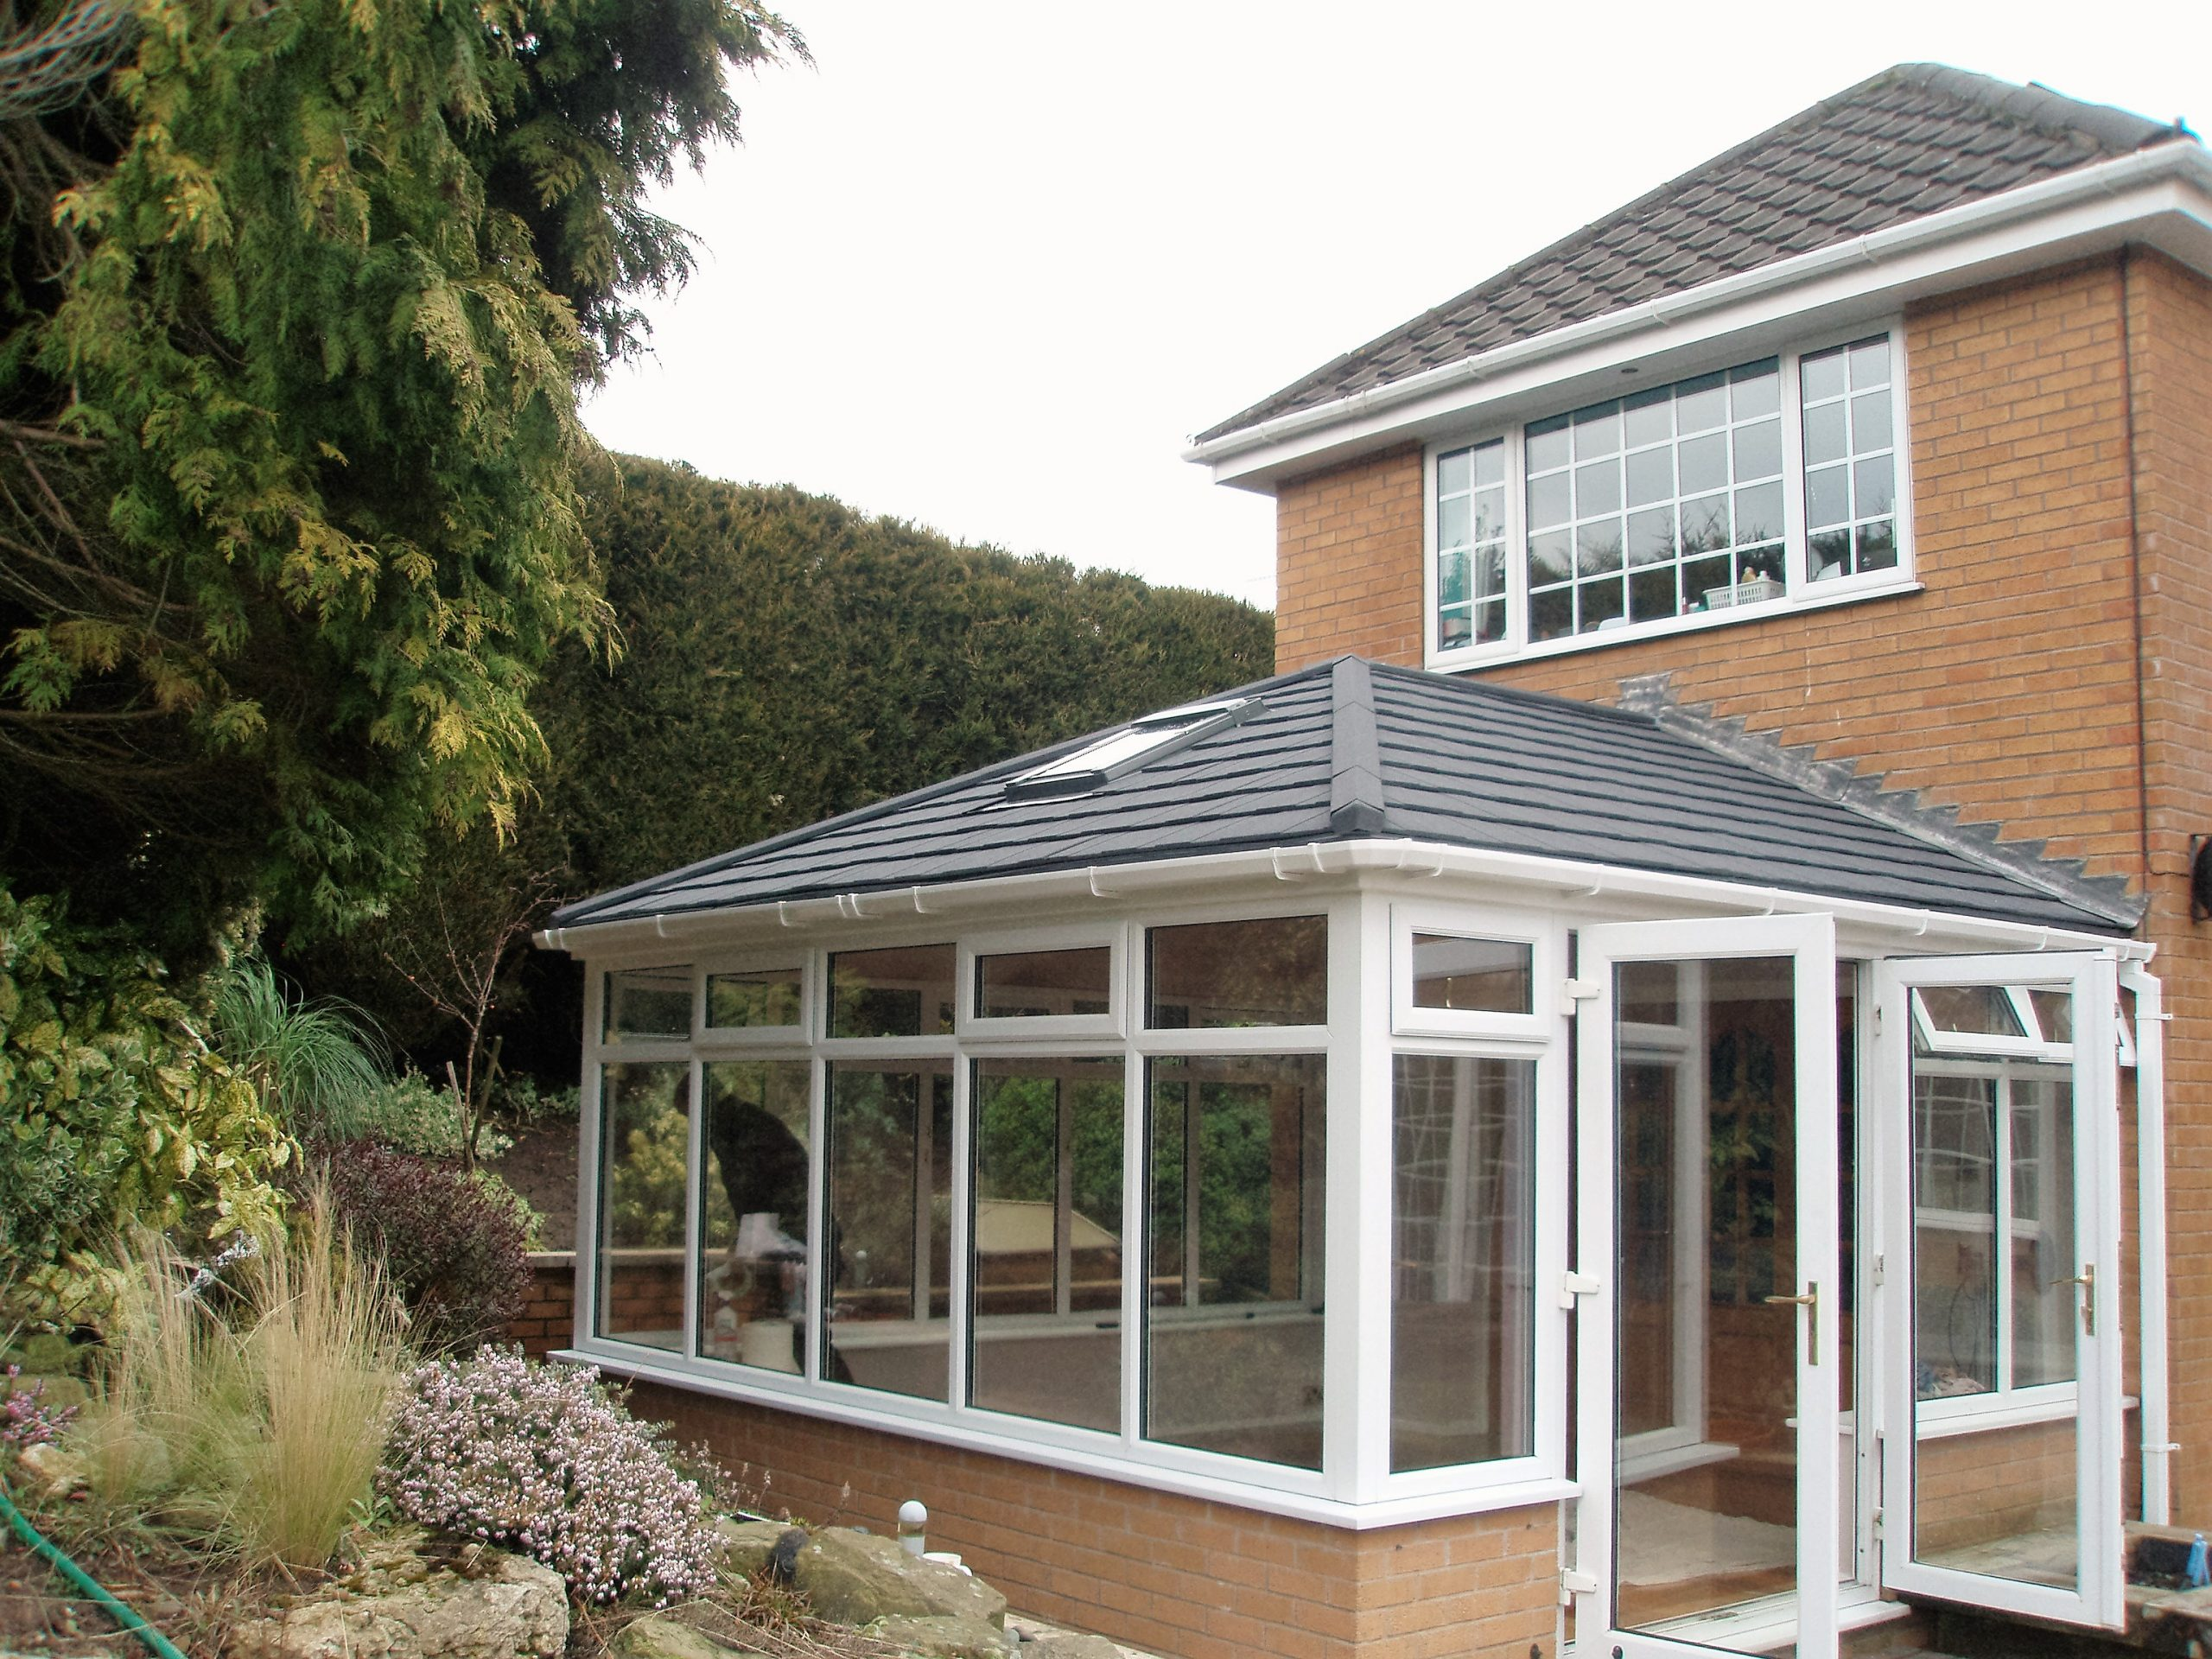 Conservatory Tiled Roof Conversions Window Repair Centre Ltd